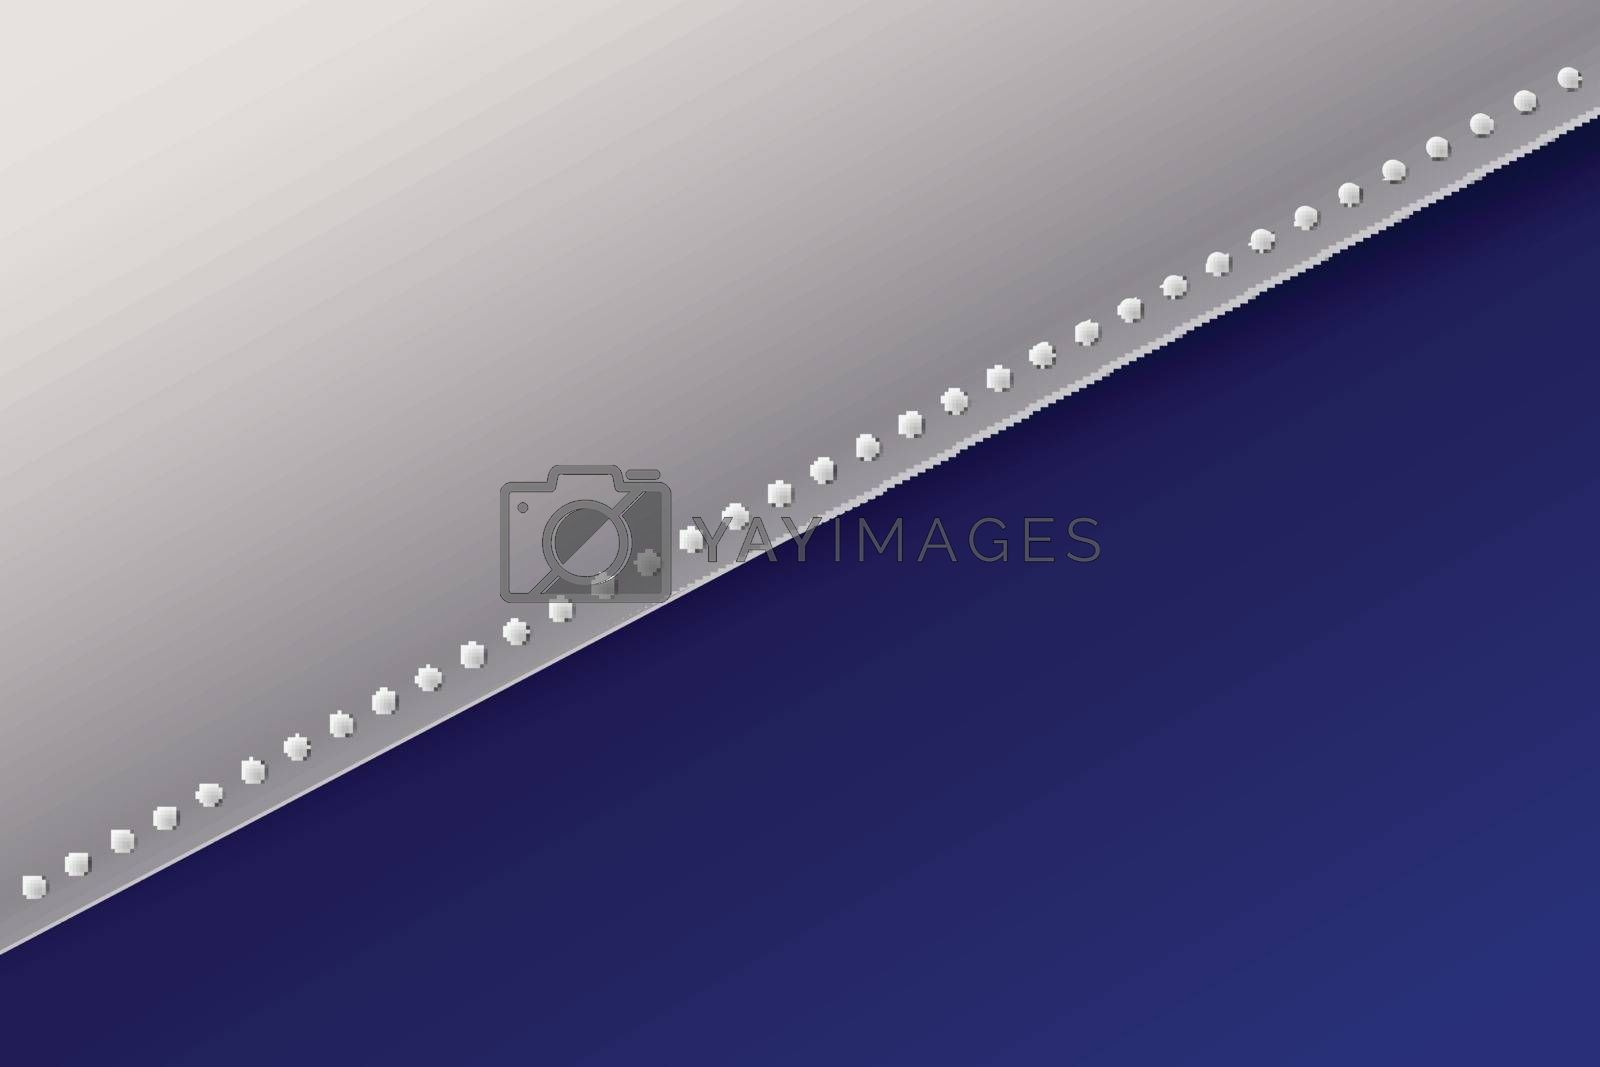 Abstract presentation template paper sheet overlap blue and white gradient color background. Vector illustration